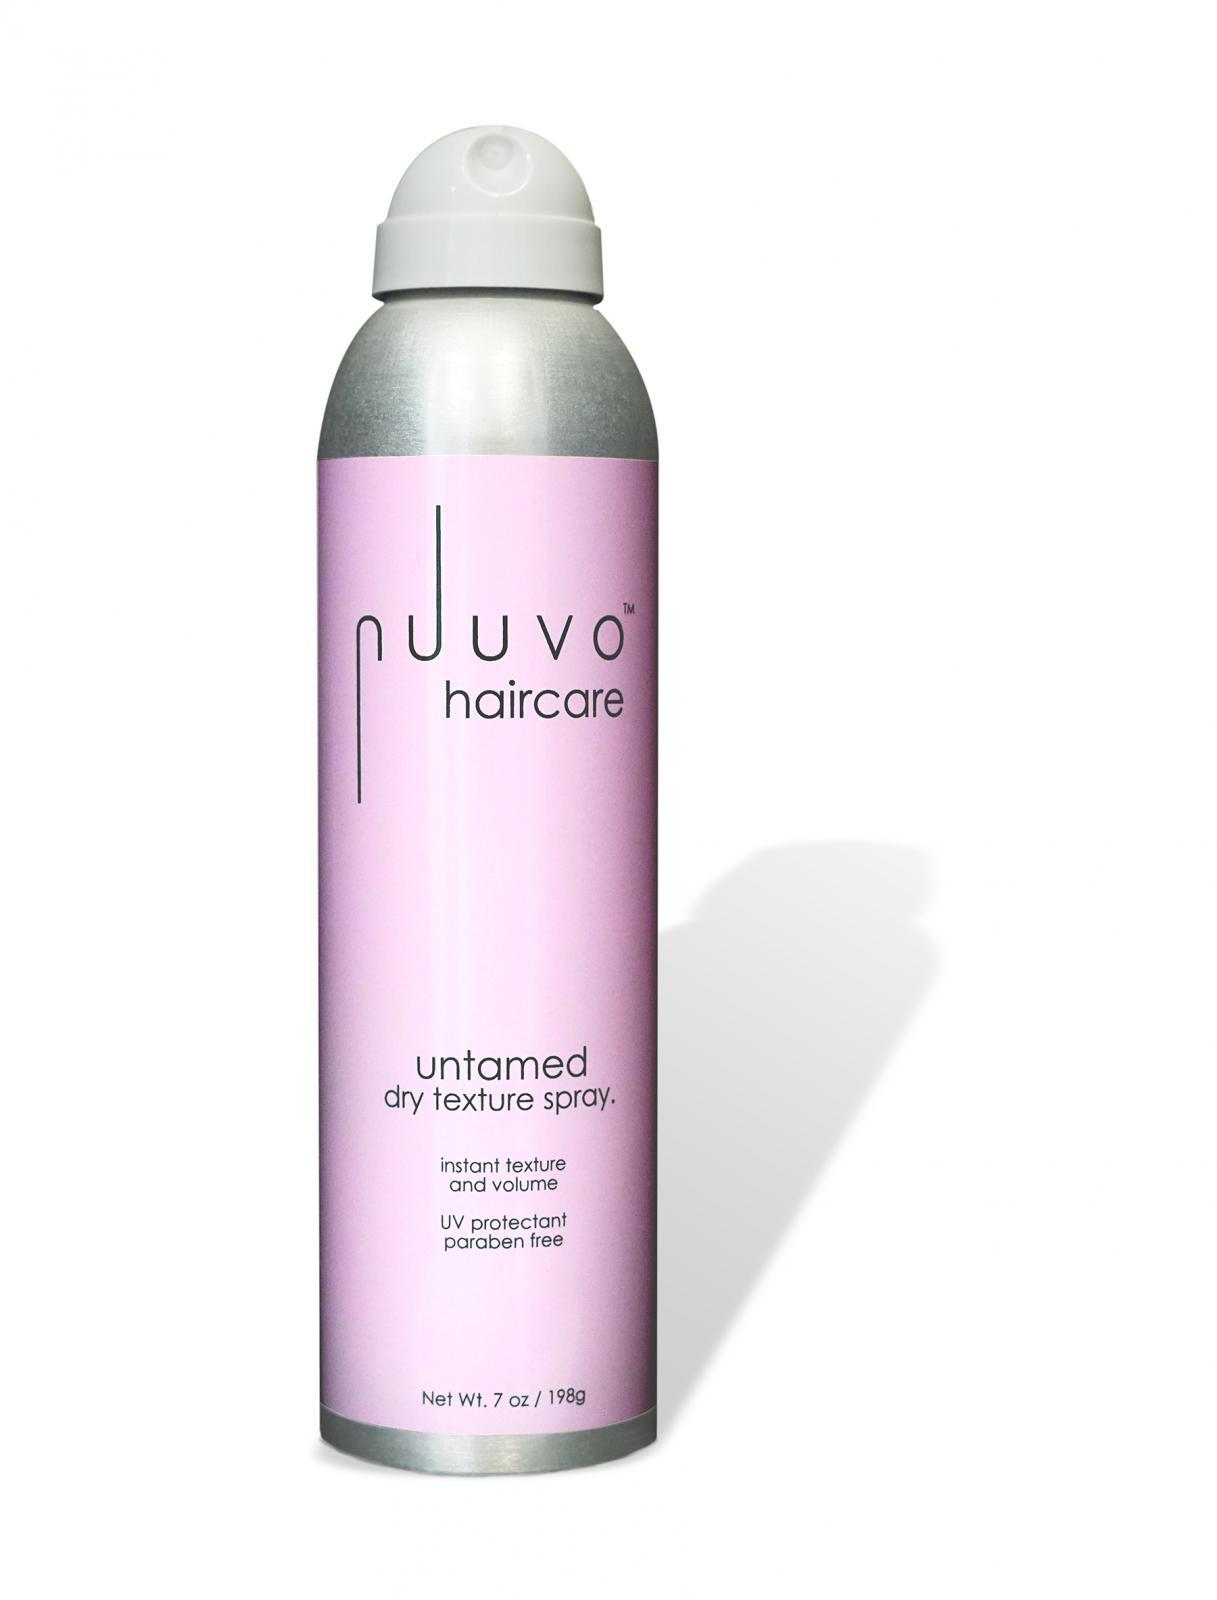 Nuuvo Haircare 'untamed' Salon Professional Dry Texture Hairspray - Adds Volume, Defintion + Fullness. Cruelty free